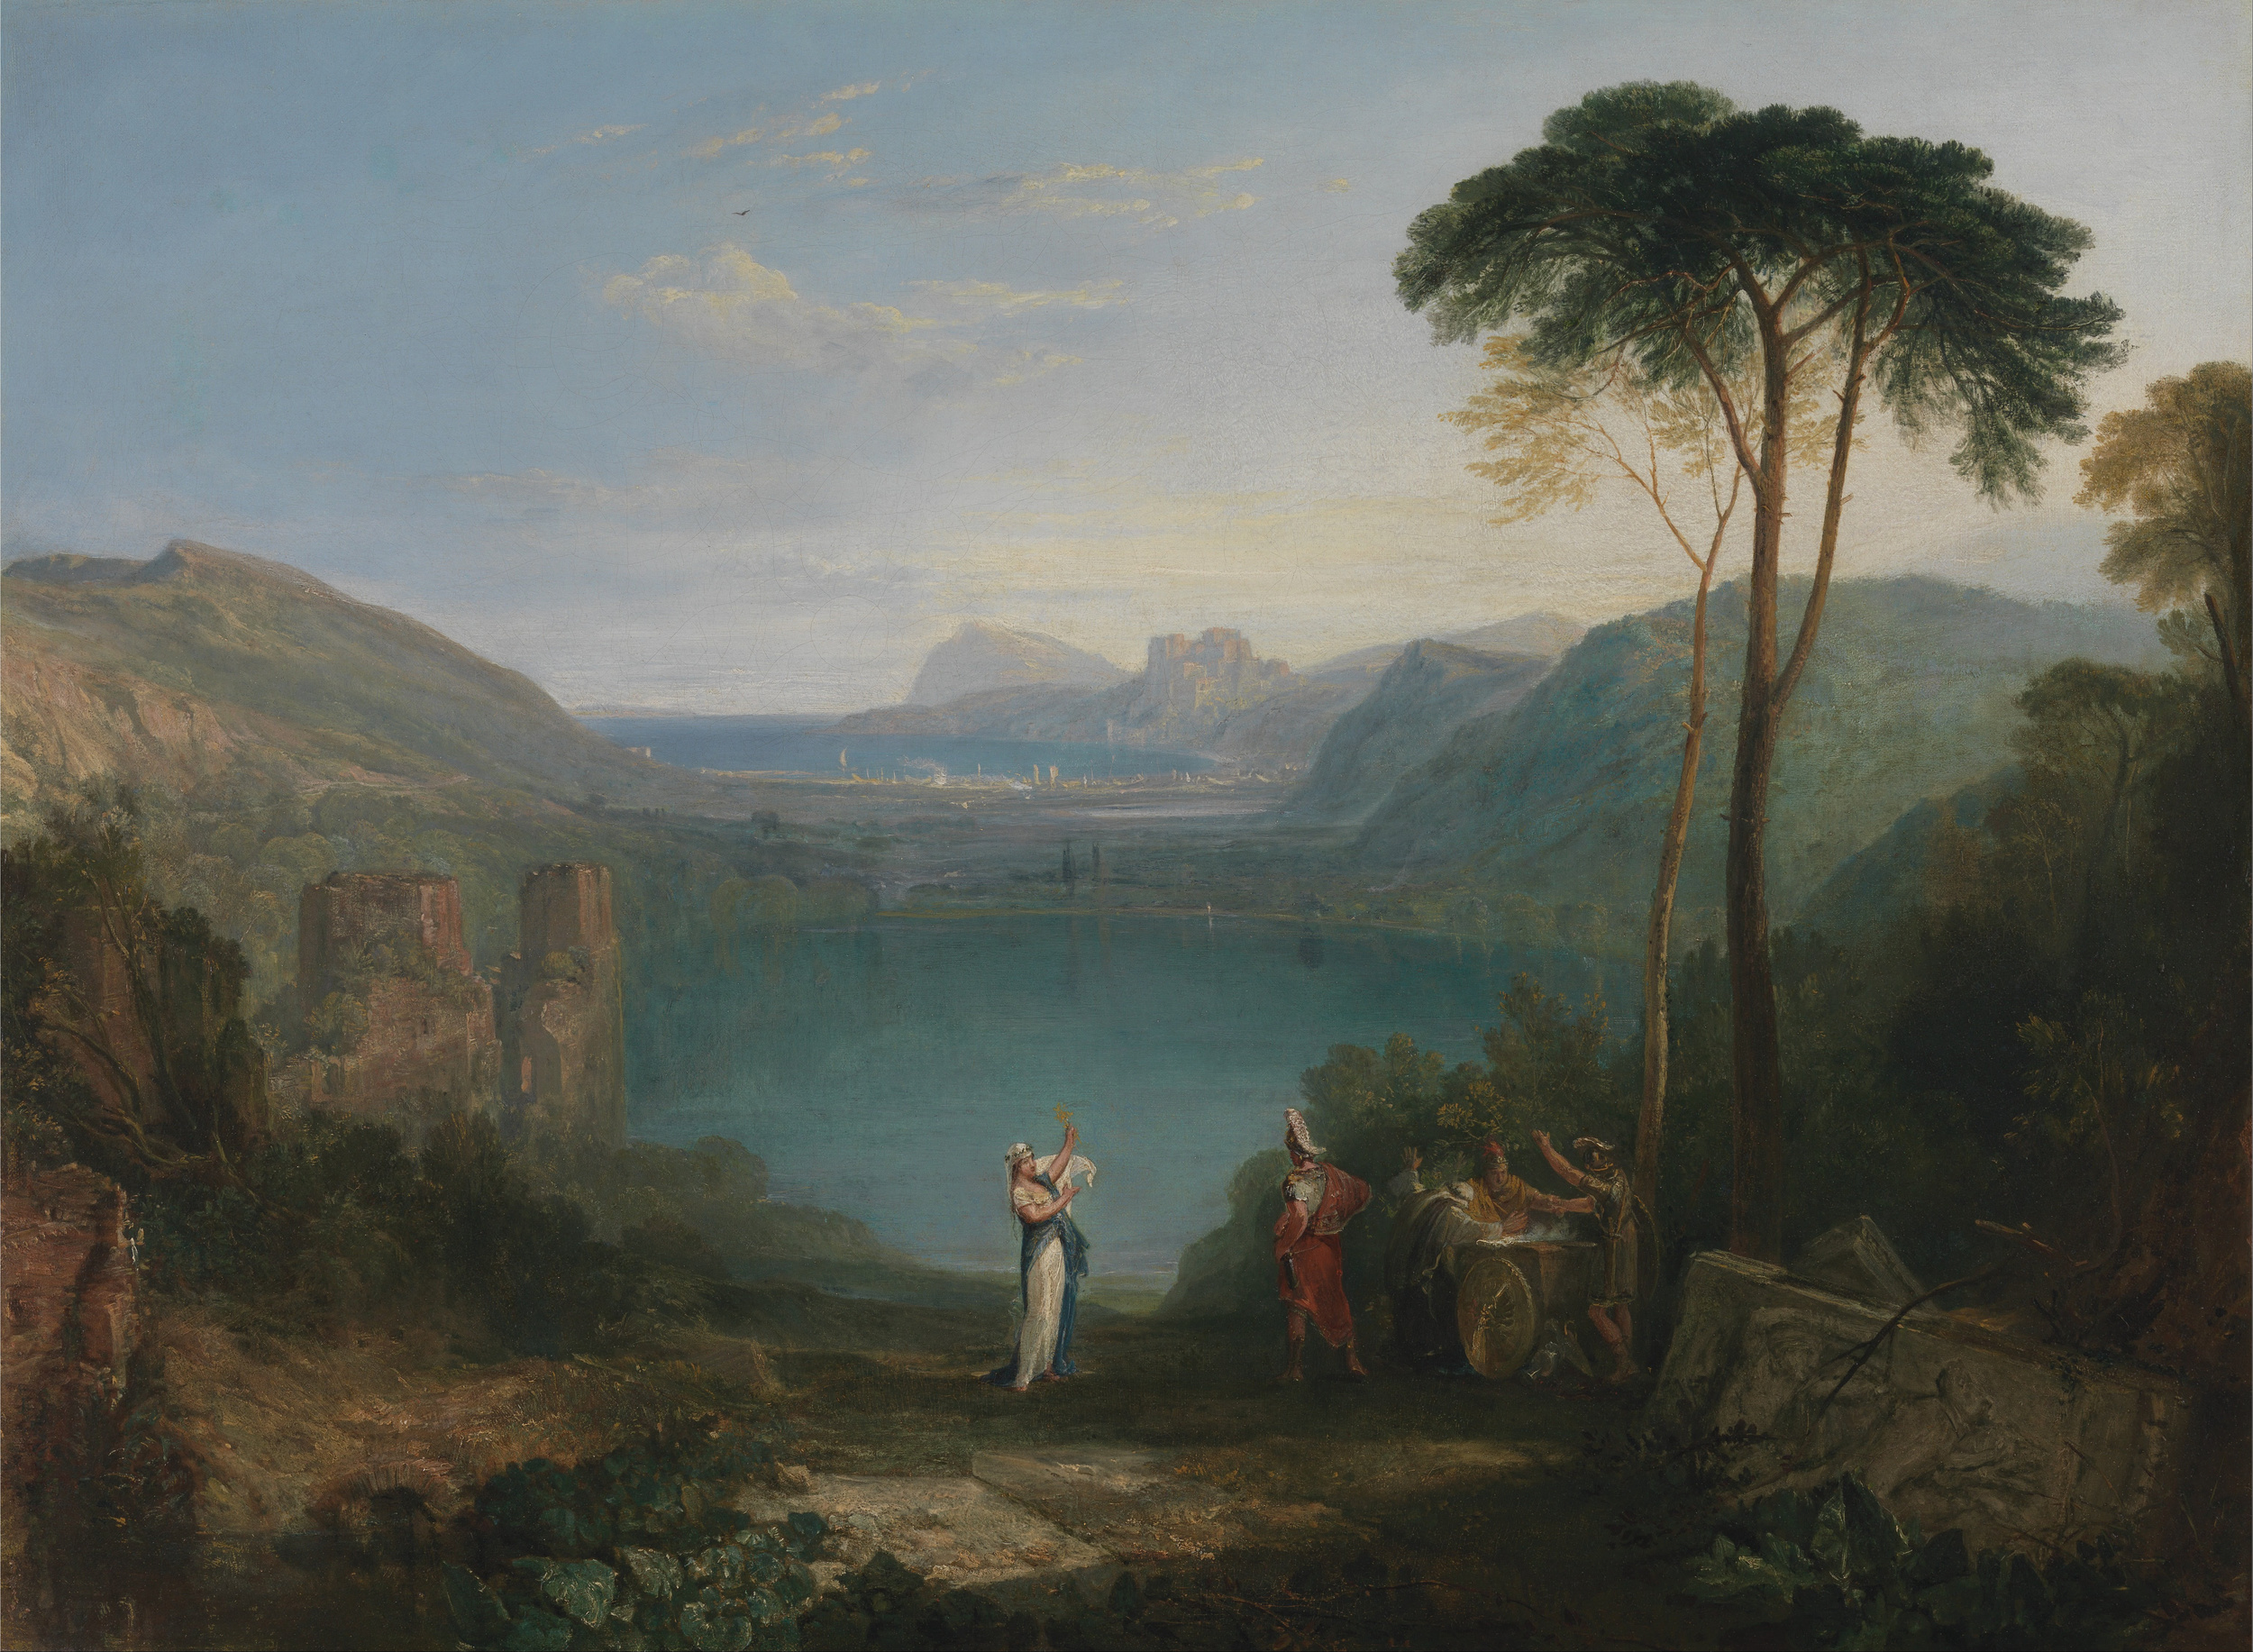 Lake Avernus by Turner